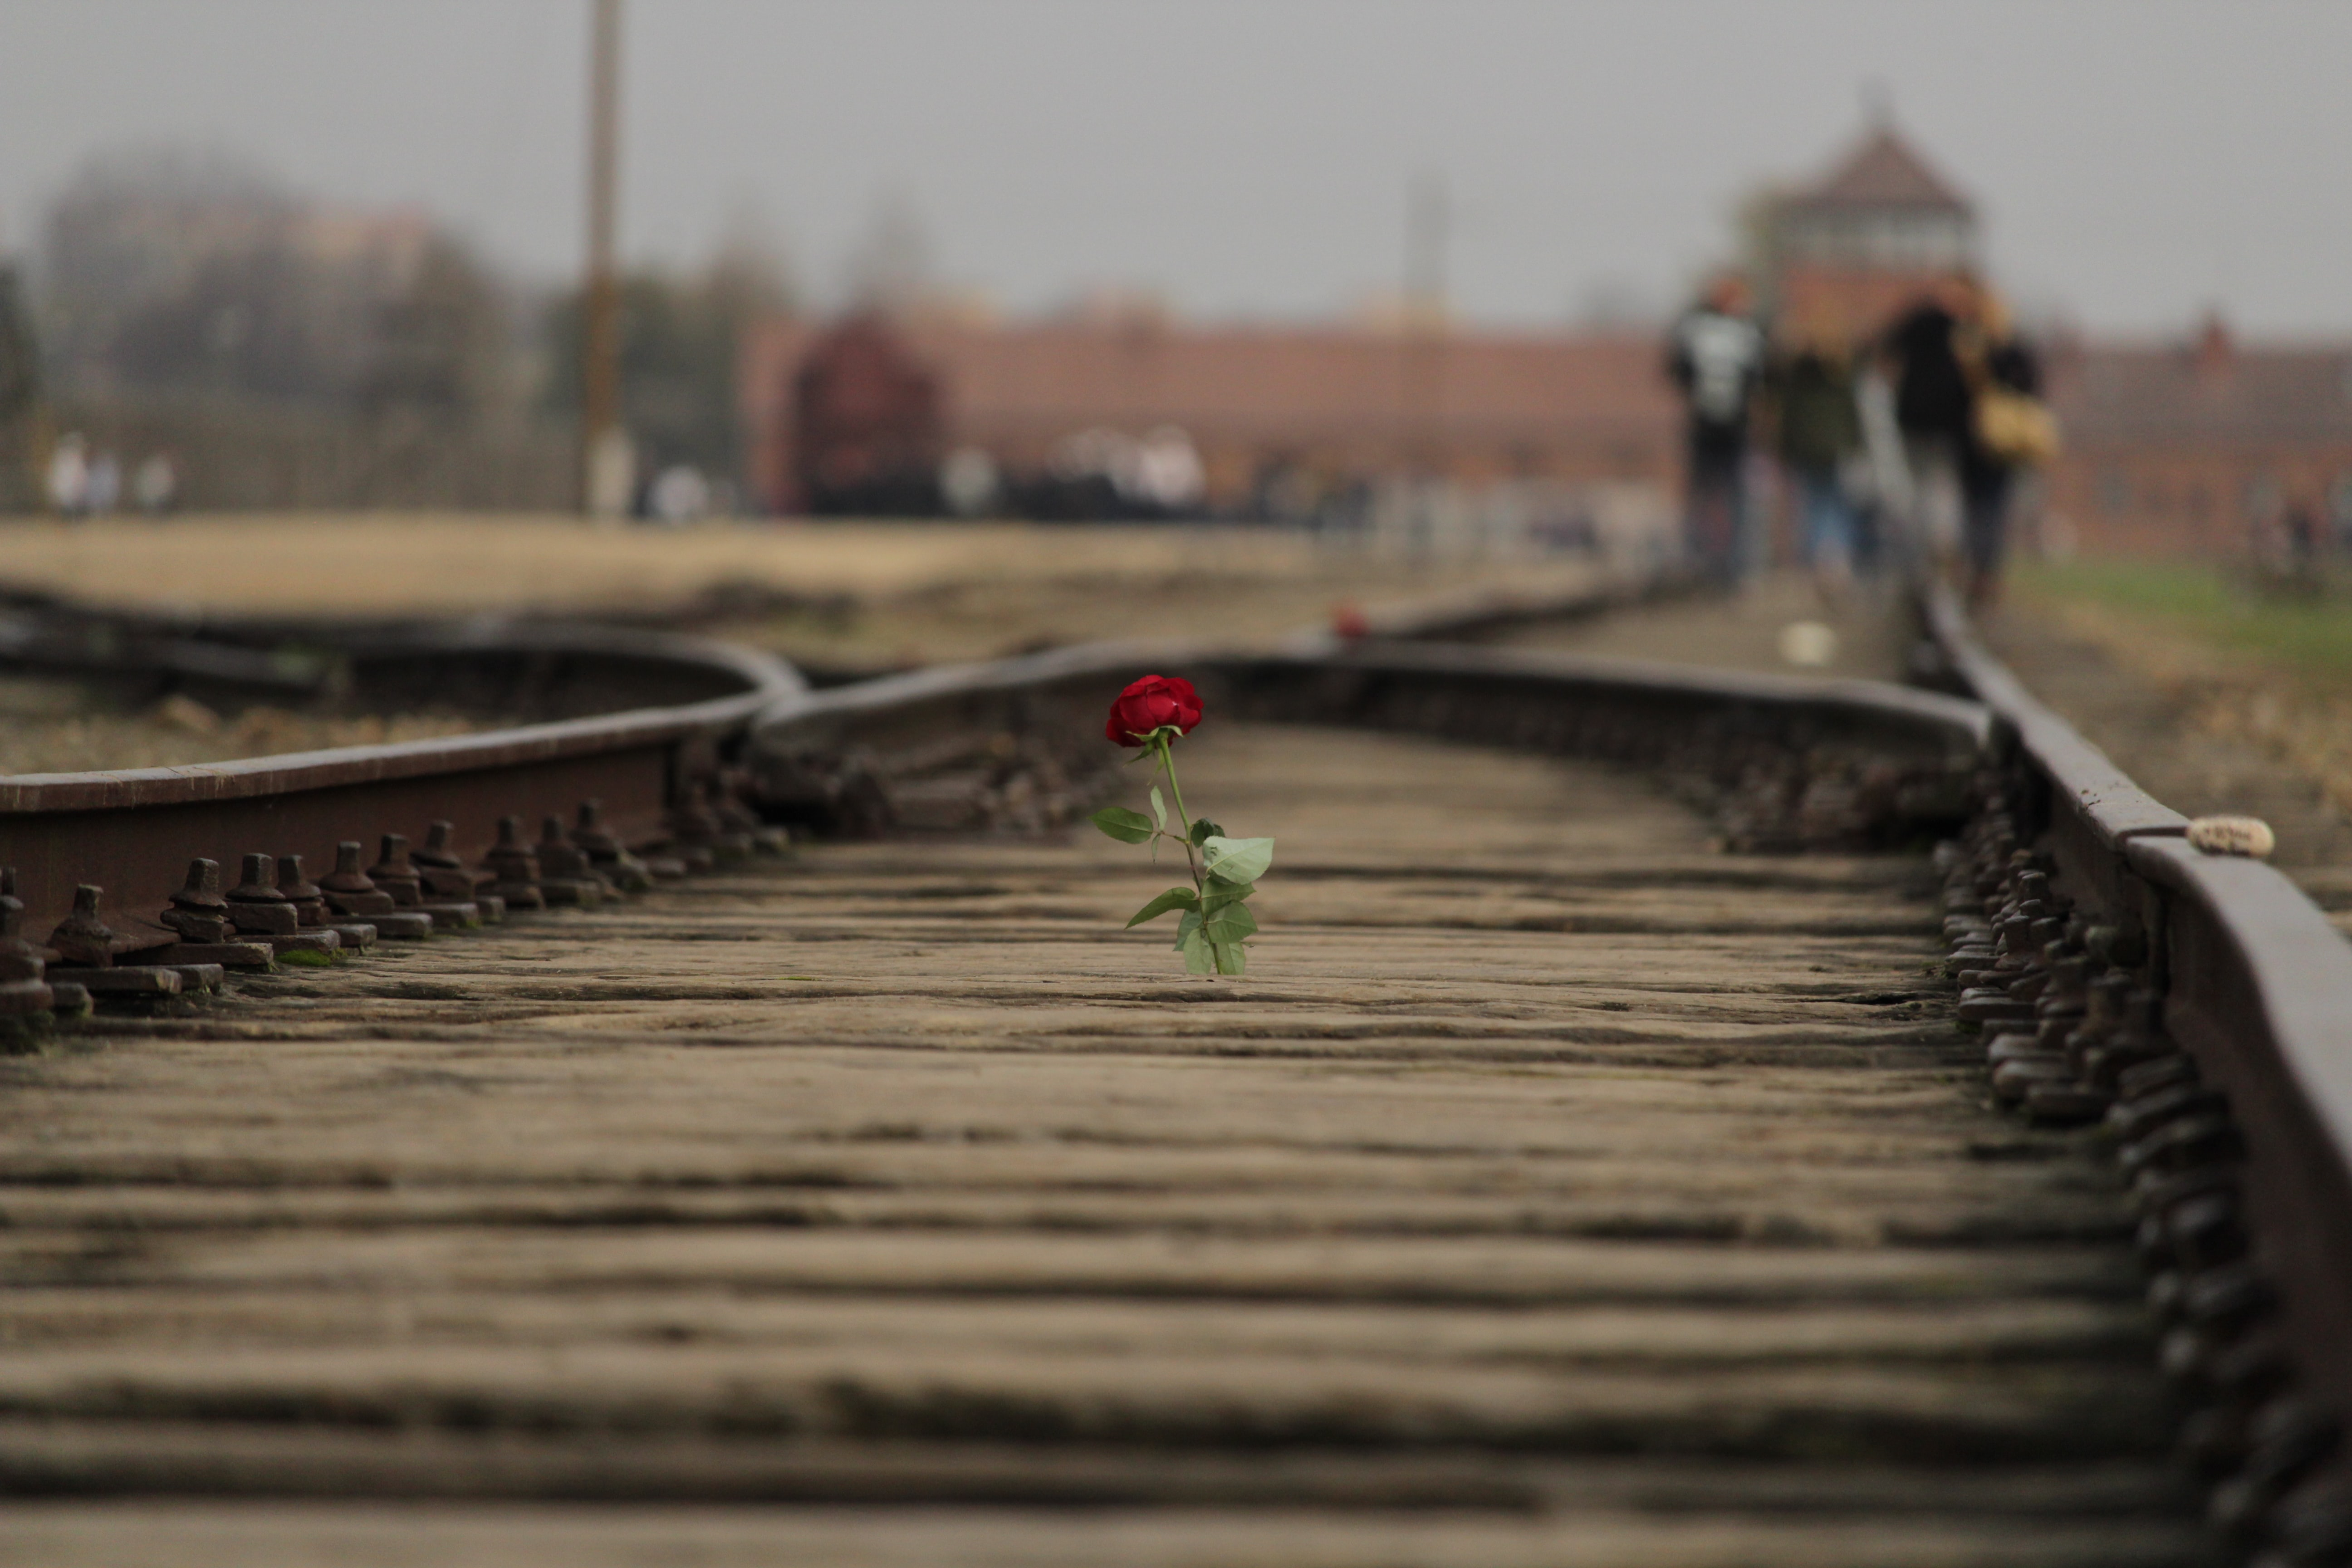 red rose flower on brown train rail